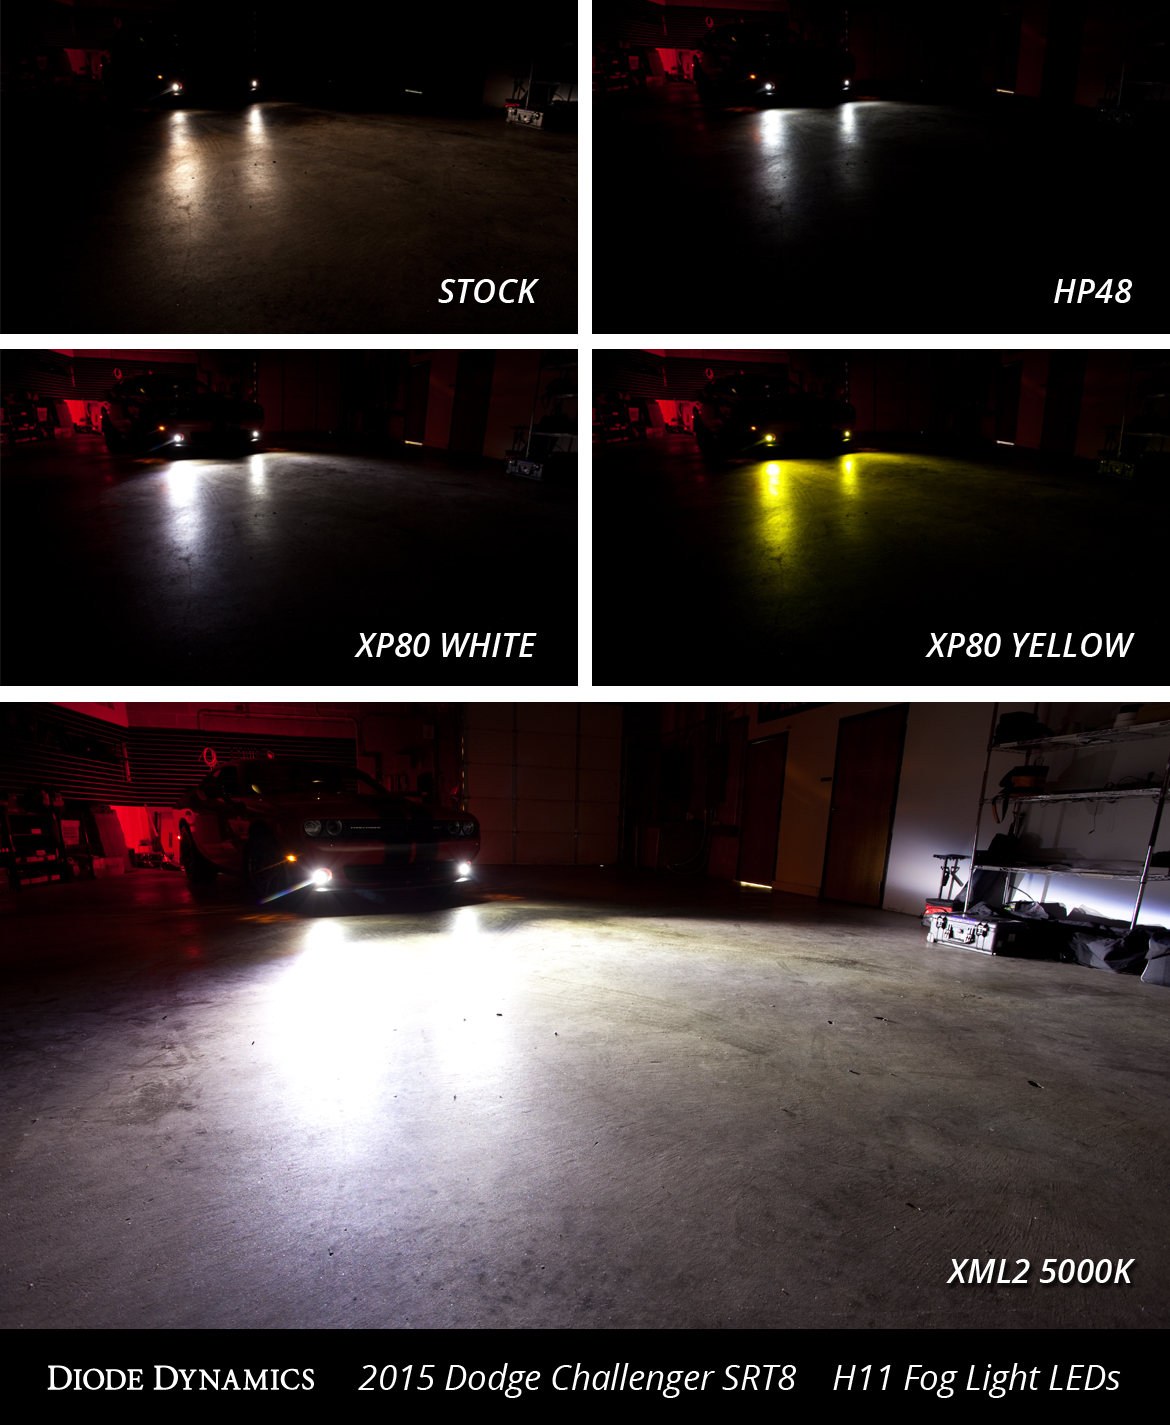 Ge Nighthawk Sport together with Hid Xenon Honda Accord Euro Style Crystal Headlights Black besides  also Sylvania Primary in addition Sylvania Xtravision Vs Silverstar Chart. on brightest hid color